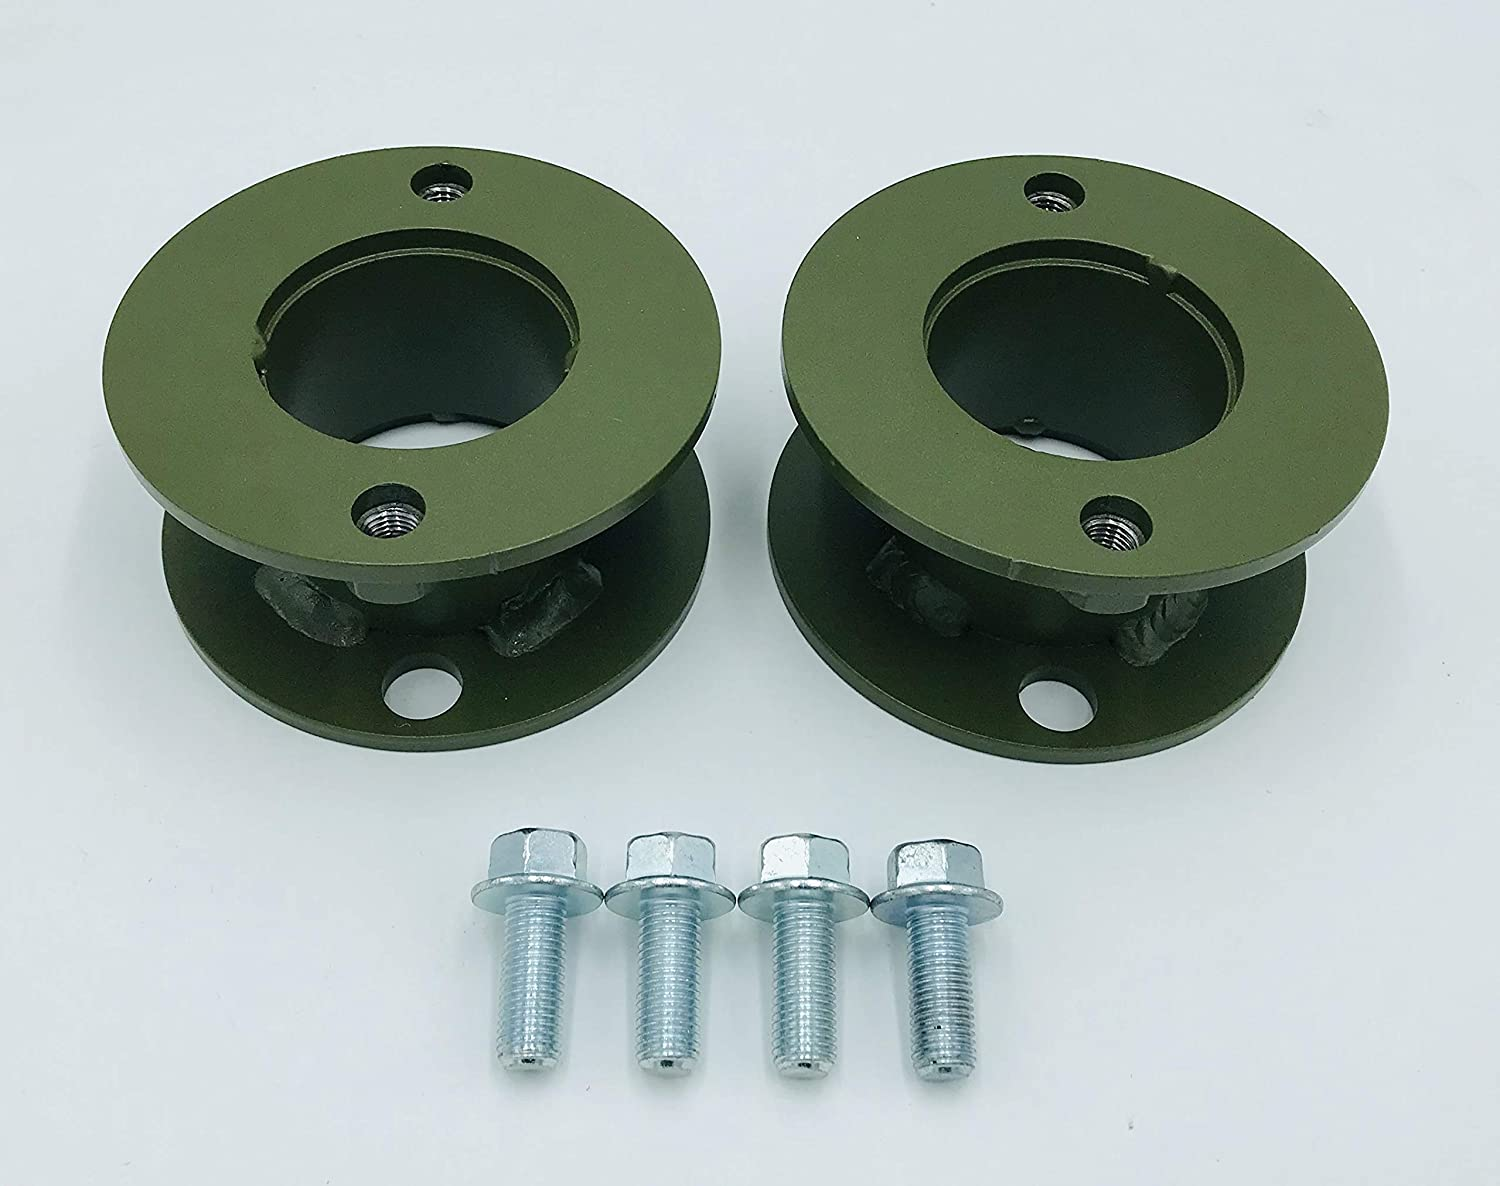 Perfectautopart Strut Spacers Leveling Lift Kit for Honda CRV EX LX 1997-2001 RD1